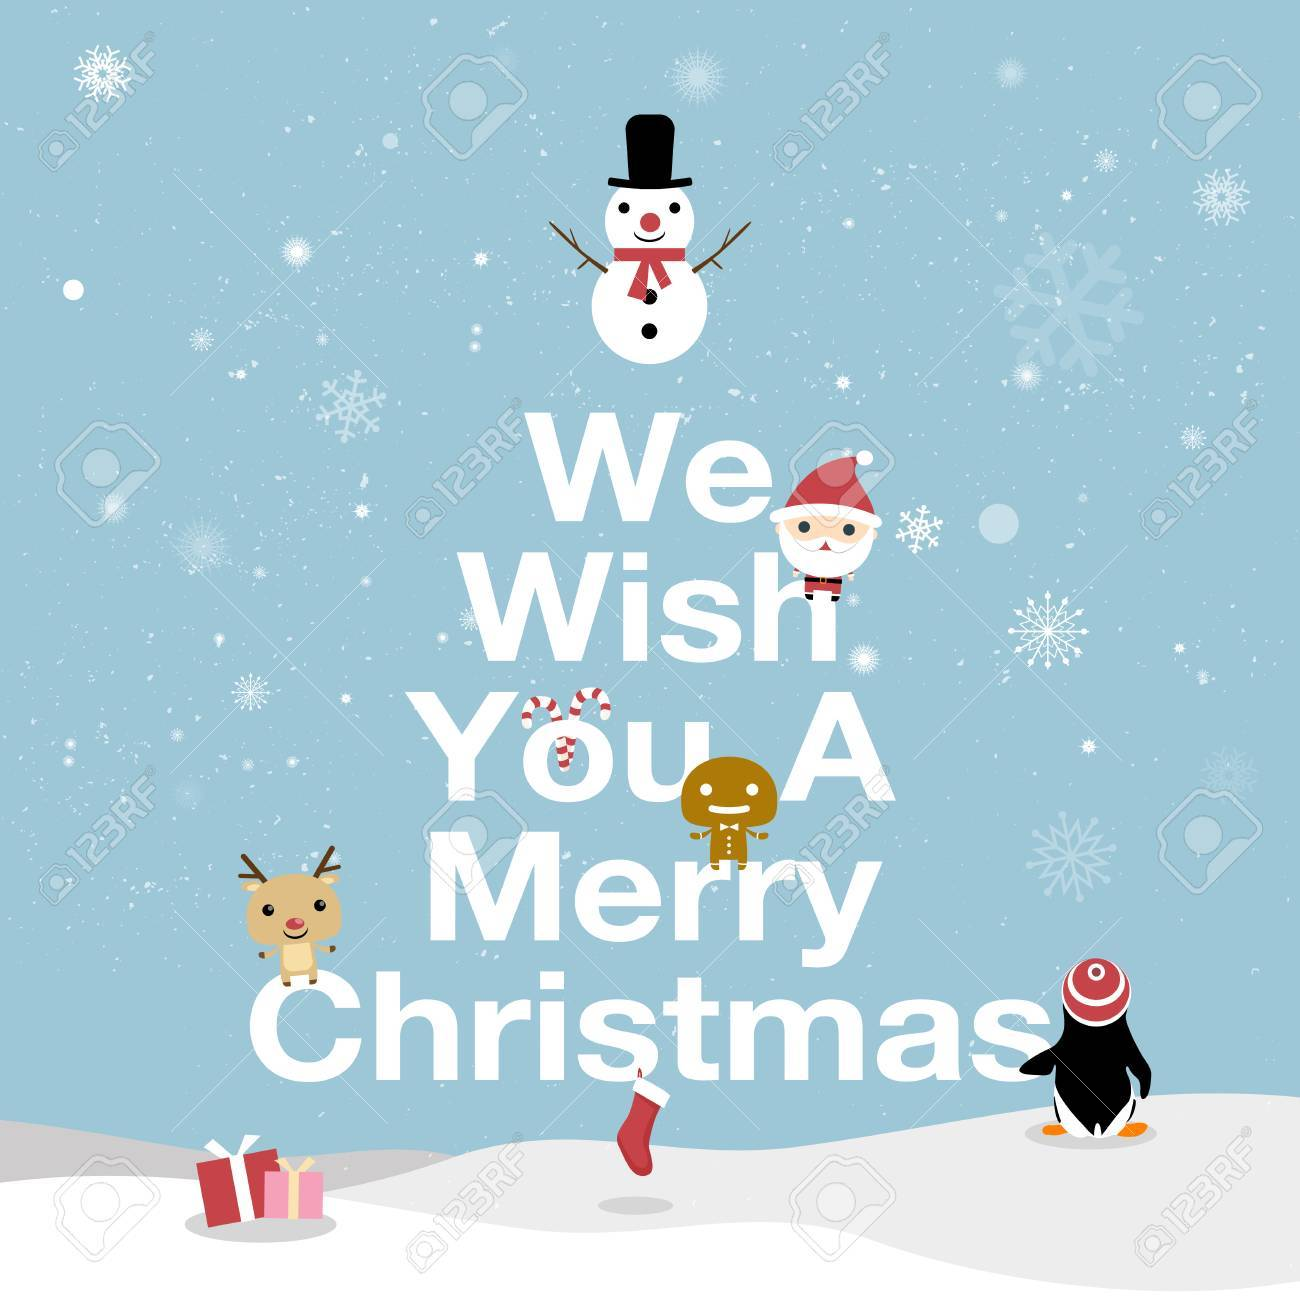 Merry Christmas Card. We Wish You A Merry Christmas Text. Bright ...